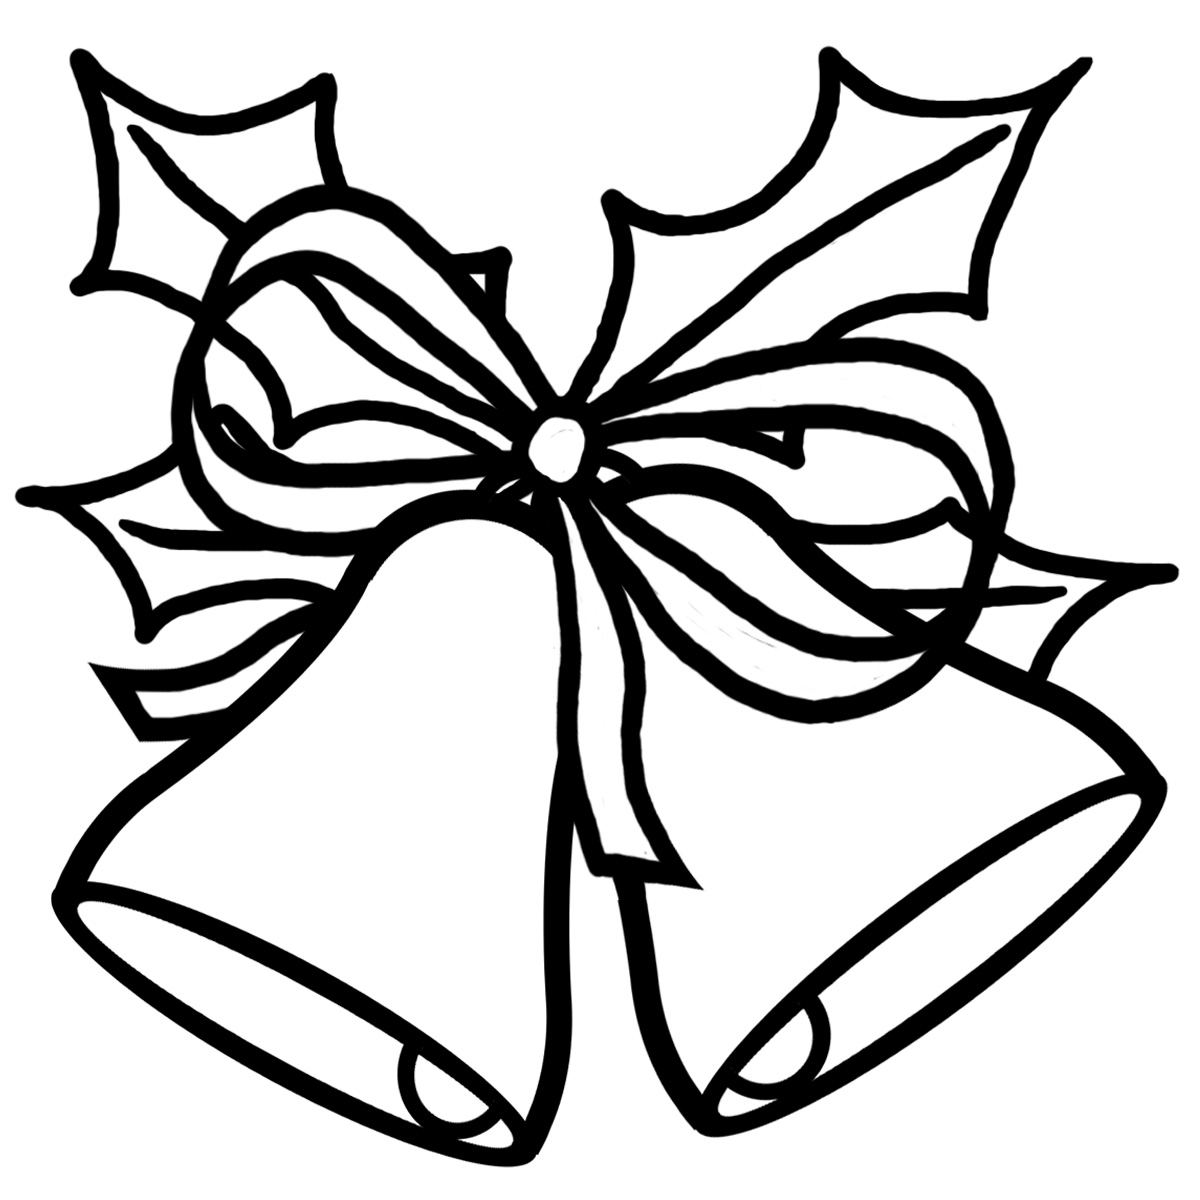 Free Black And White Christmas Clipart Download Free Clip